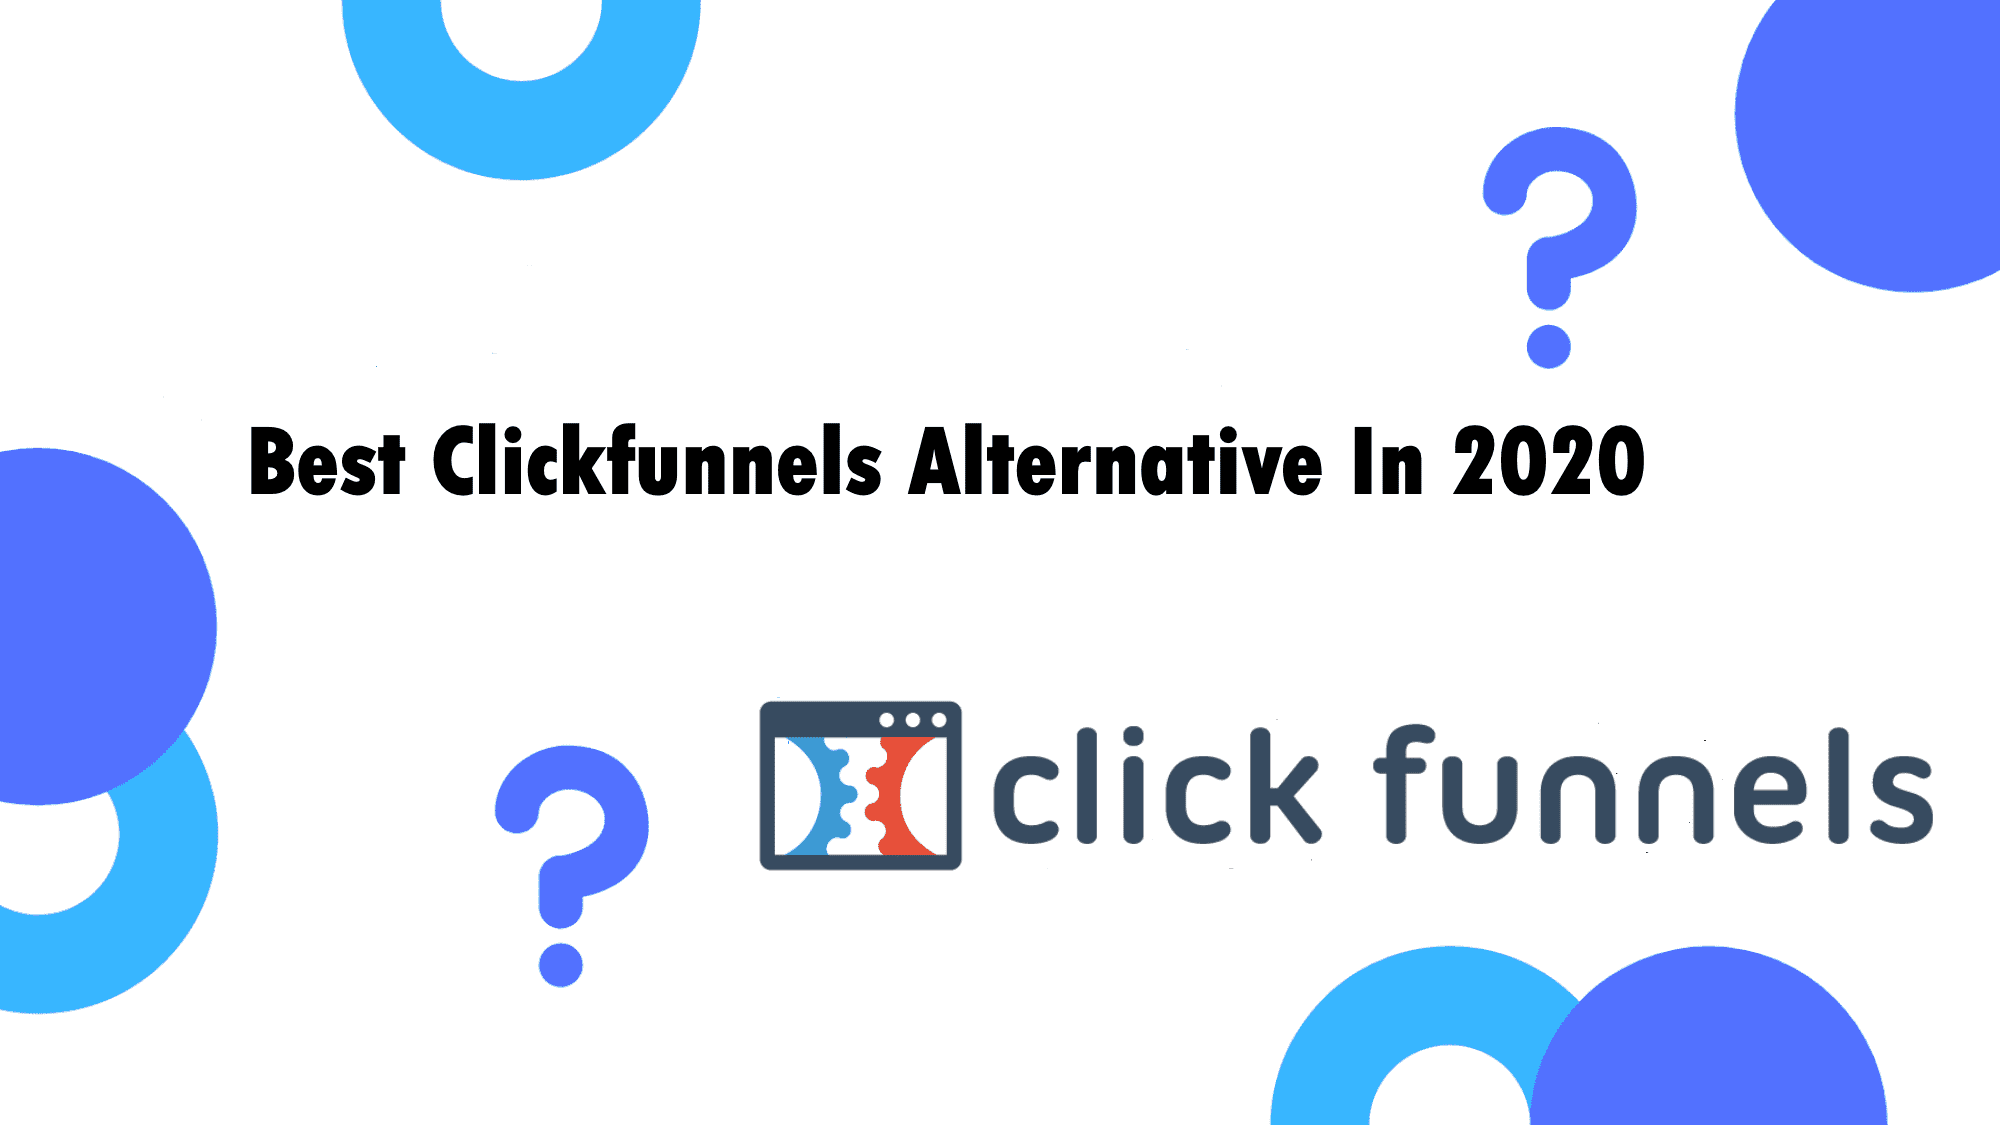 The Best Clickfunnels Alternative You'll Find in 2020